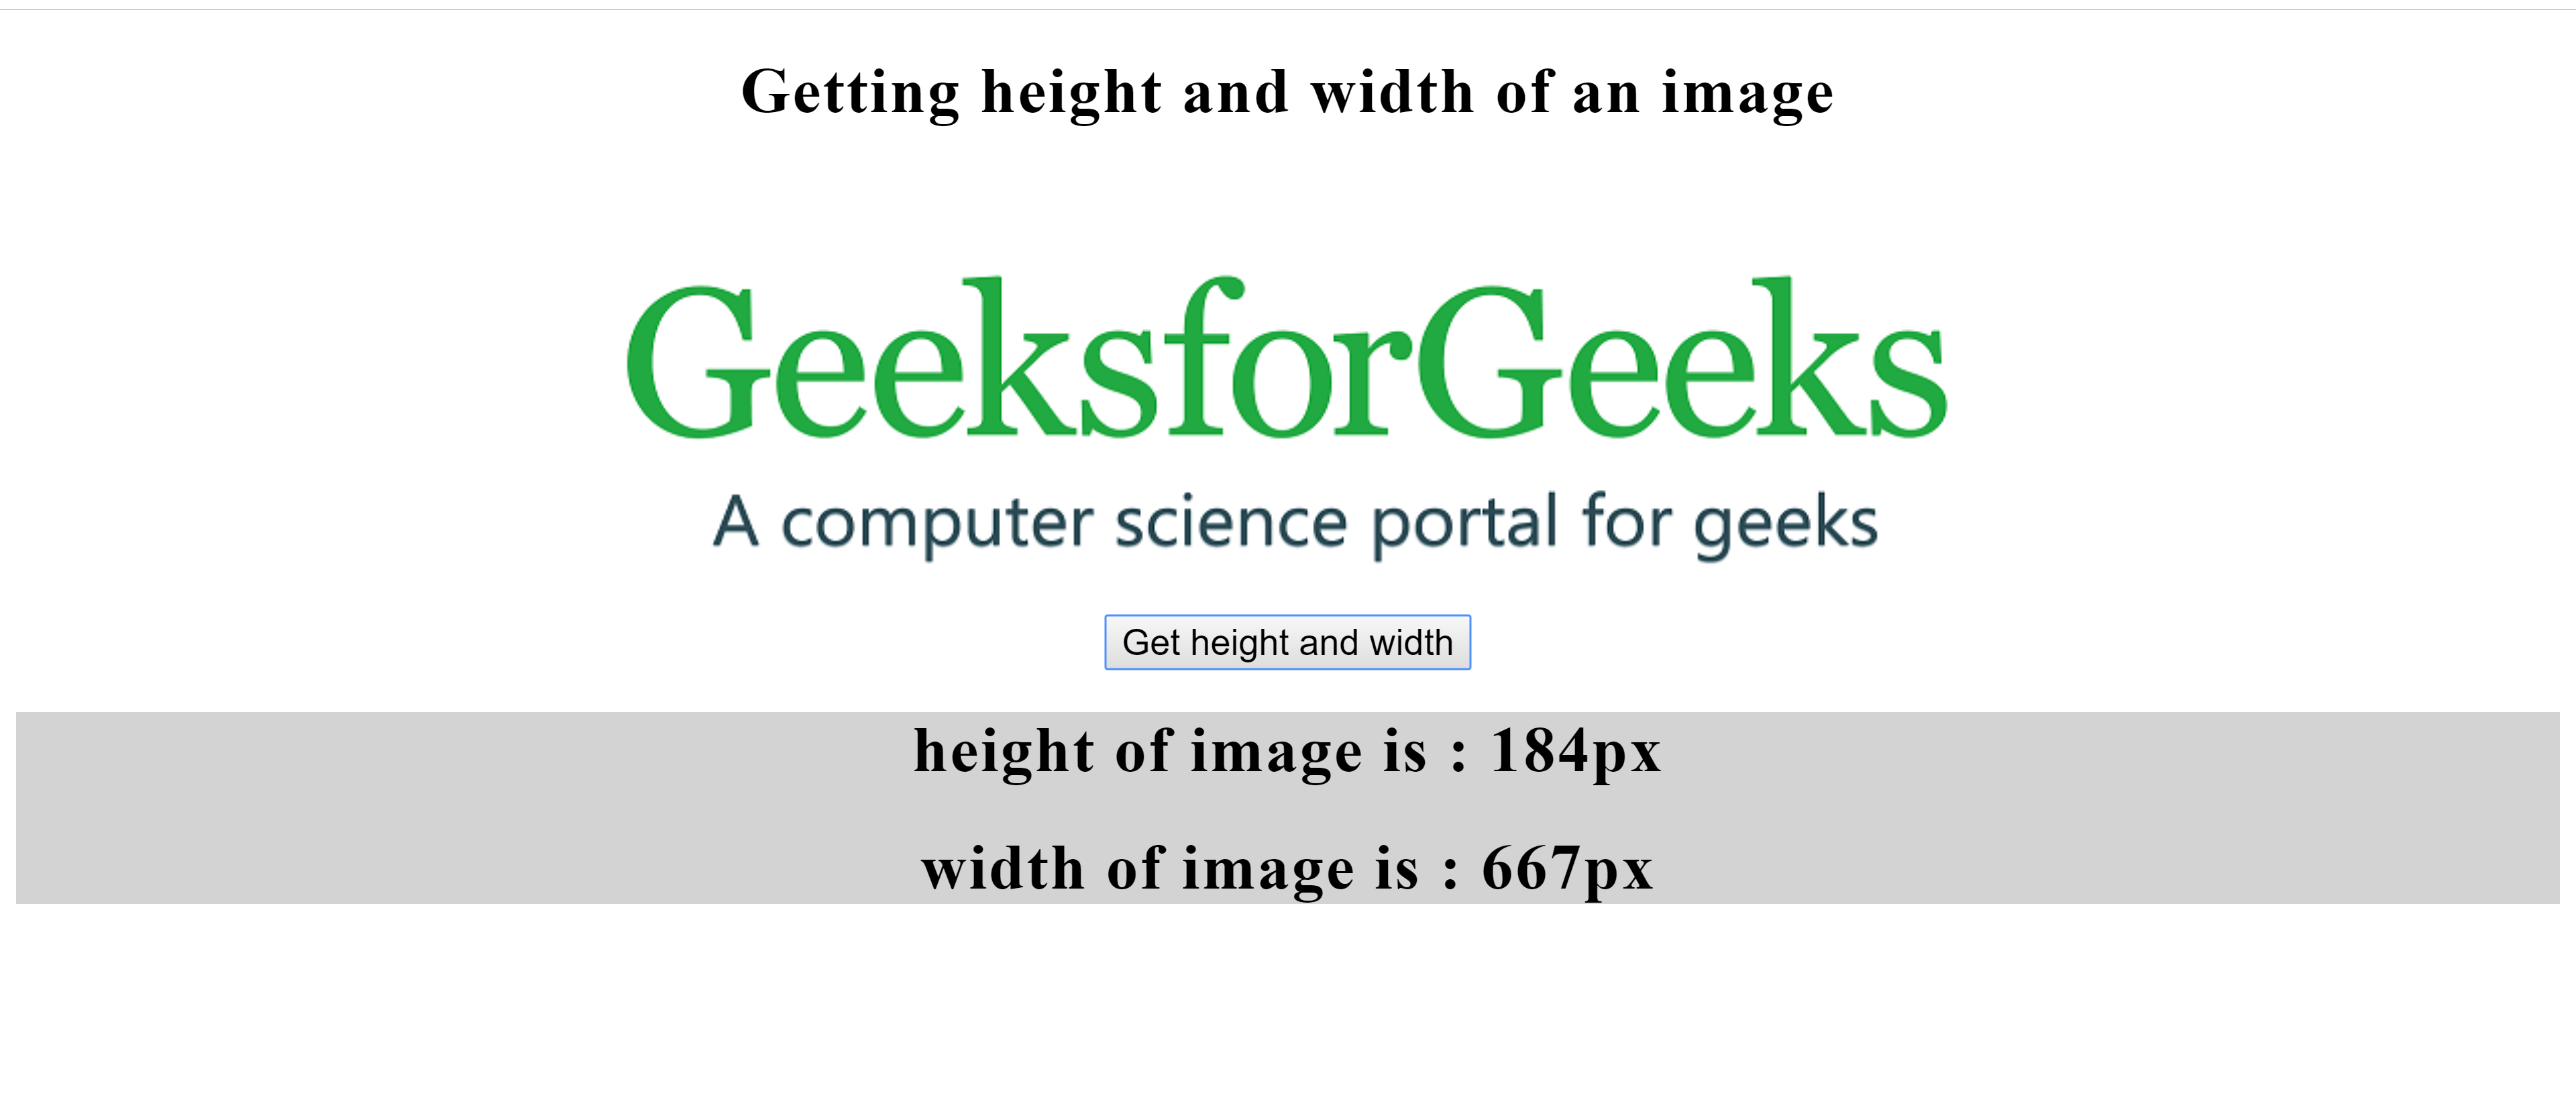 How to get the image size (height & width) using JavaScript